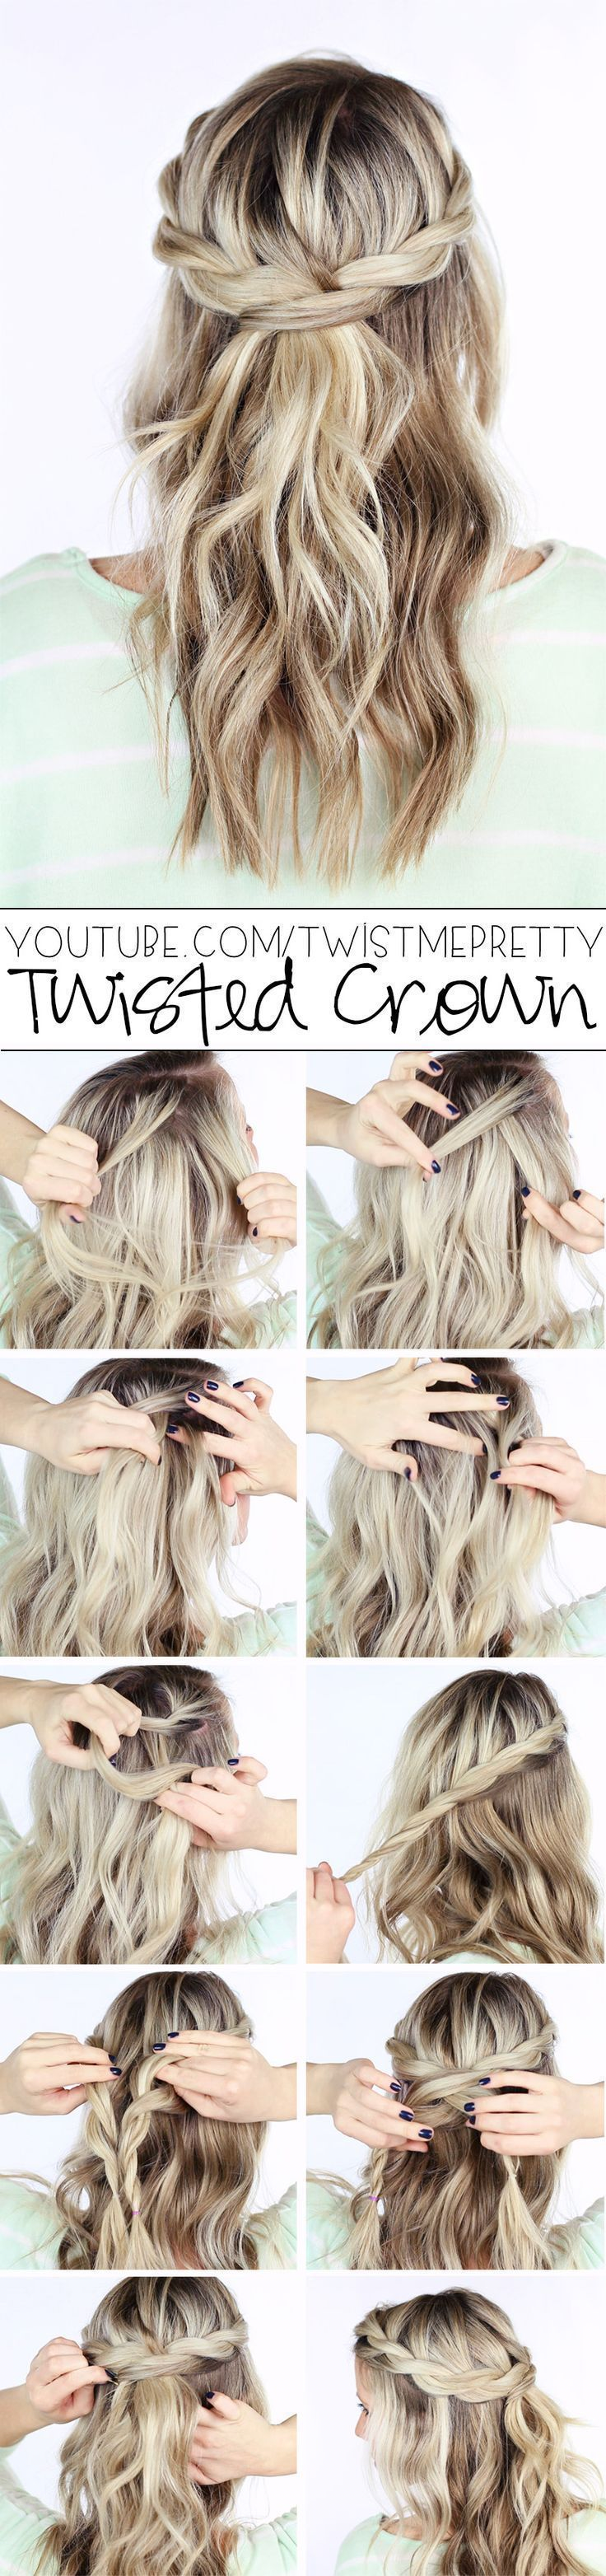 These are gorgeous wedding hairstyles! I think I'll go with the floral crown style hairstyle. So boho. | DIY Hair Style